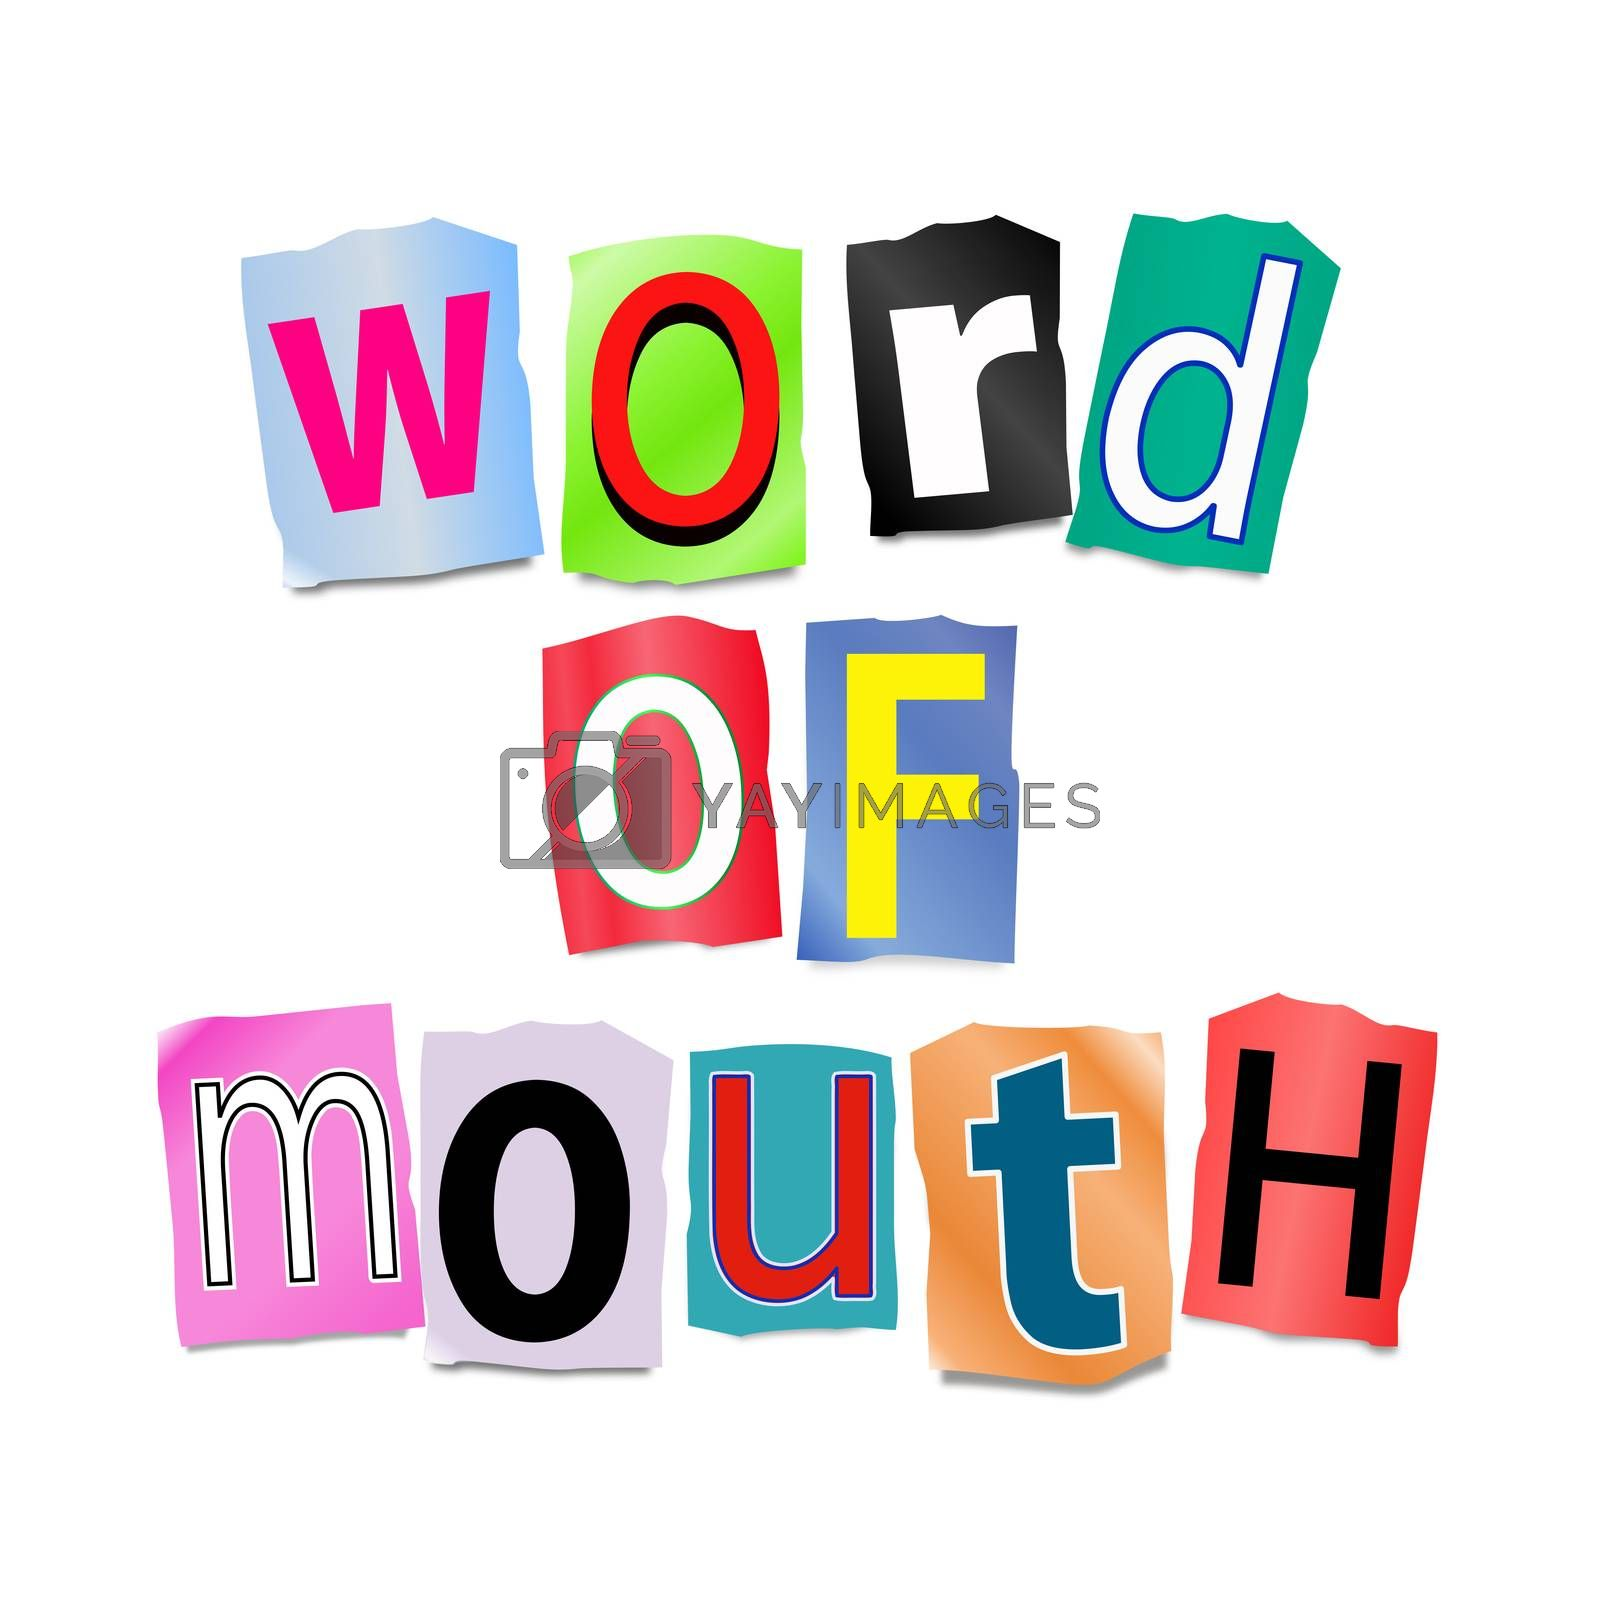 Illustration depicting a set of cut out printed letters formed to arrange the words word of mouth.